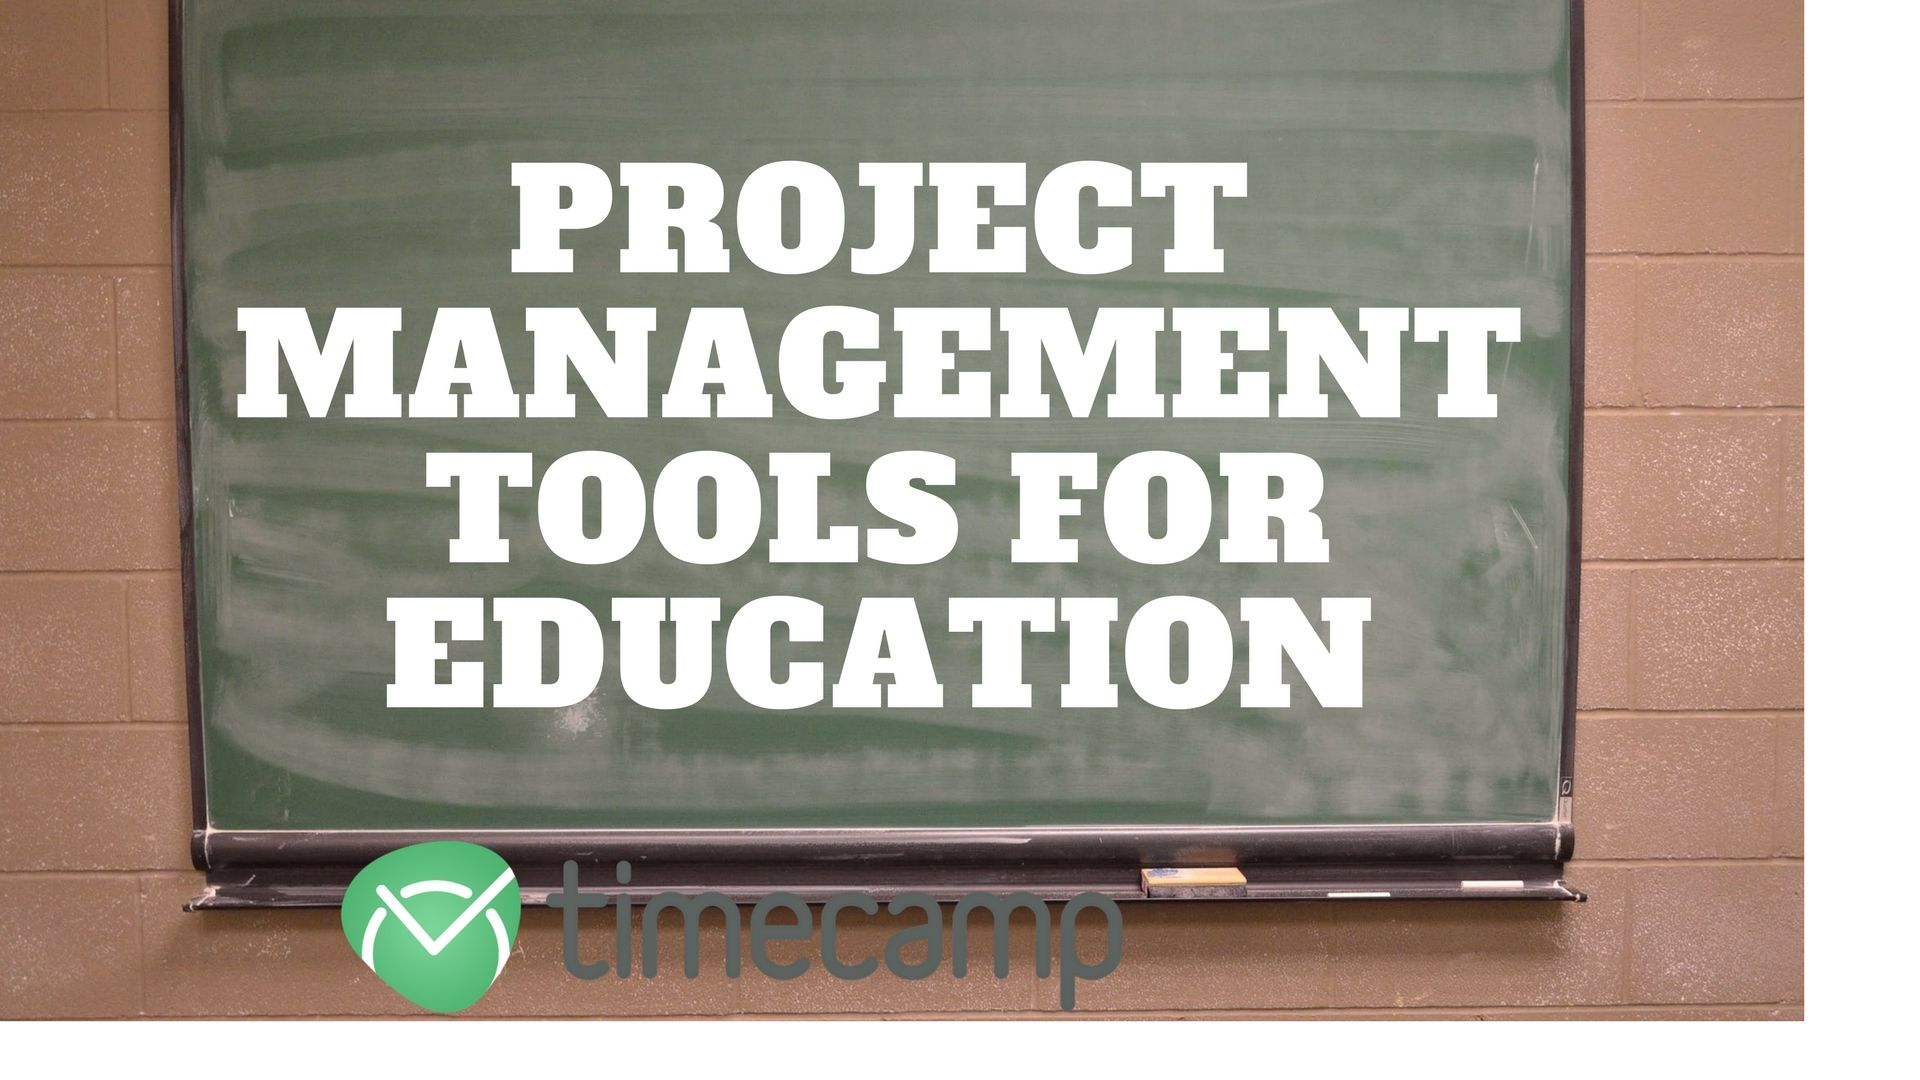 Project Management Tools for Education - TimeCamp